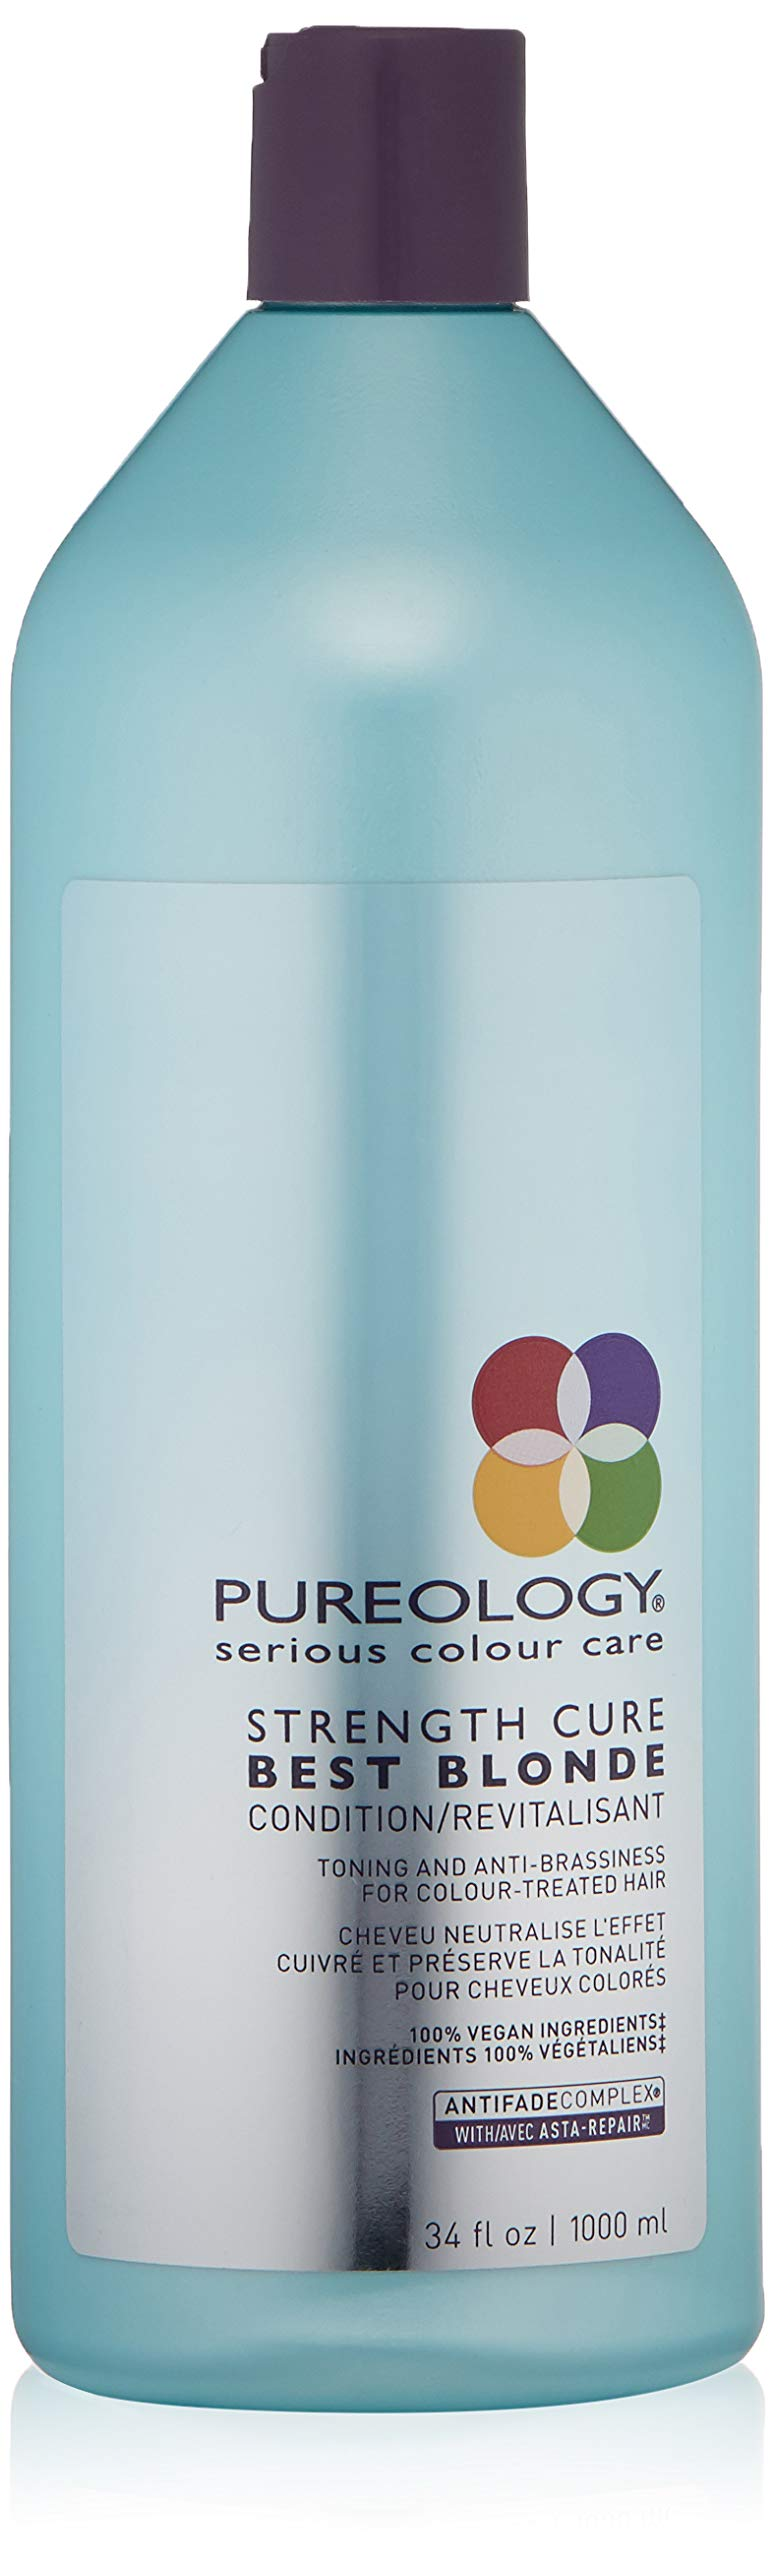 Pureology Strength Cure Best Blonde Purple Conditioner, 33.8 fl. oz. by Pureology (Image #1)